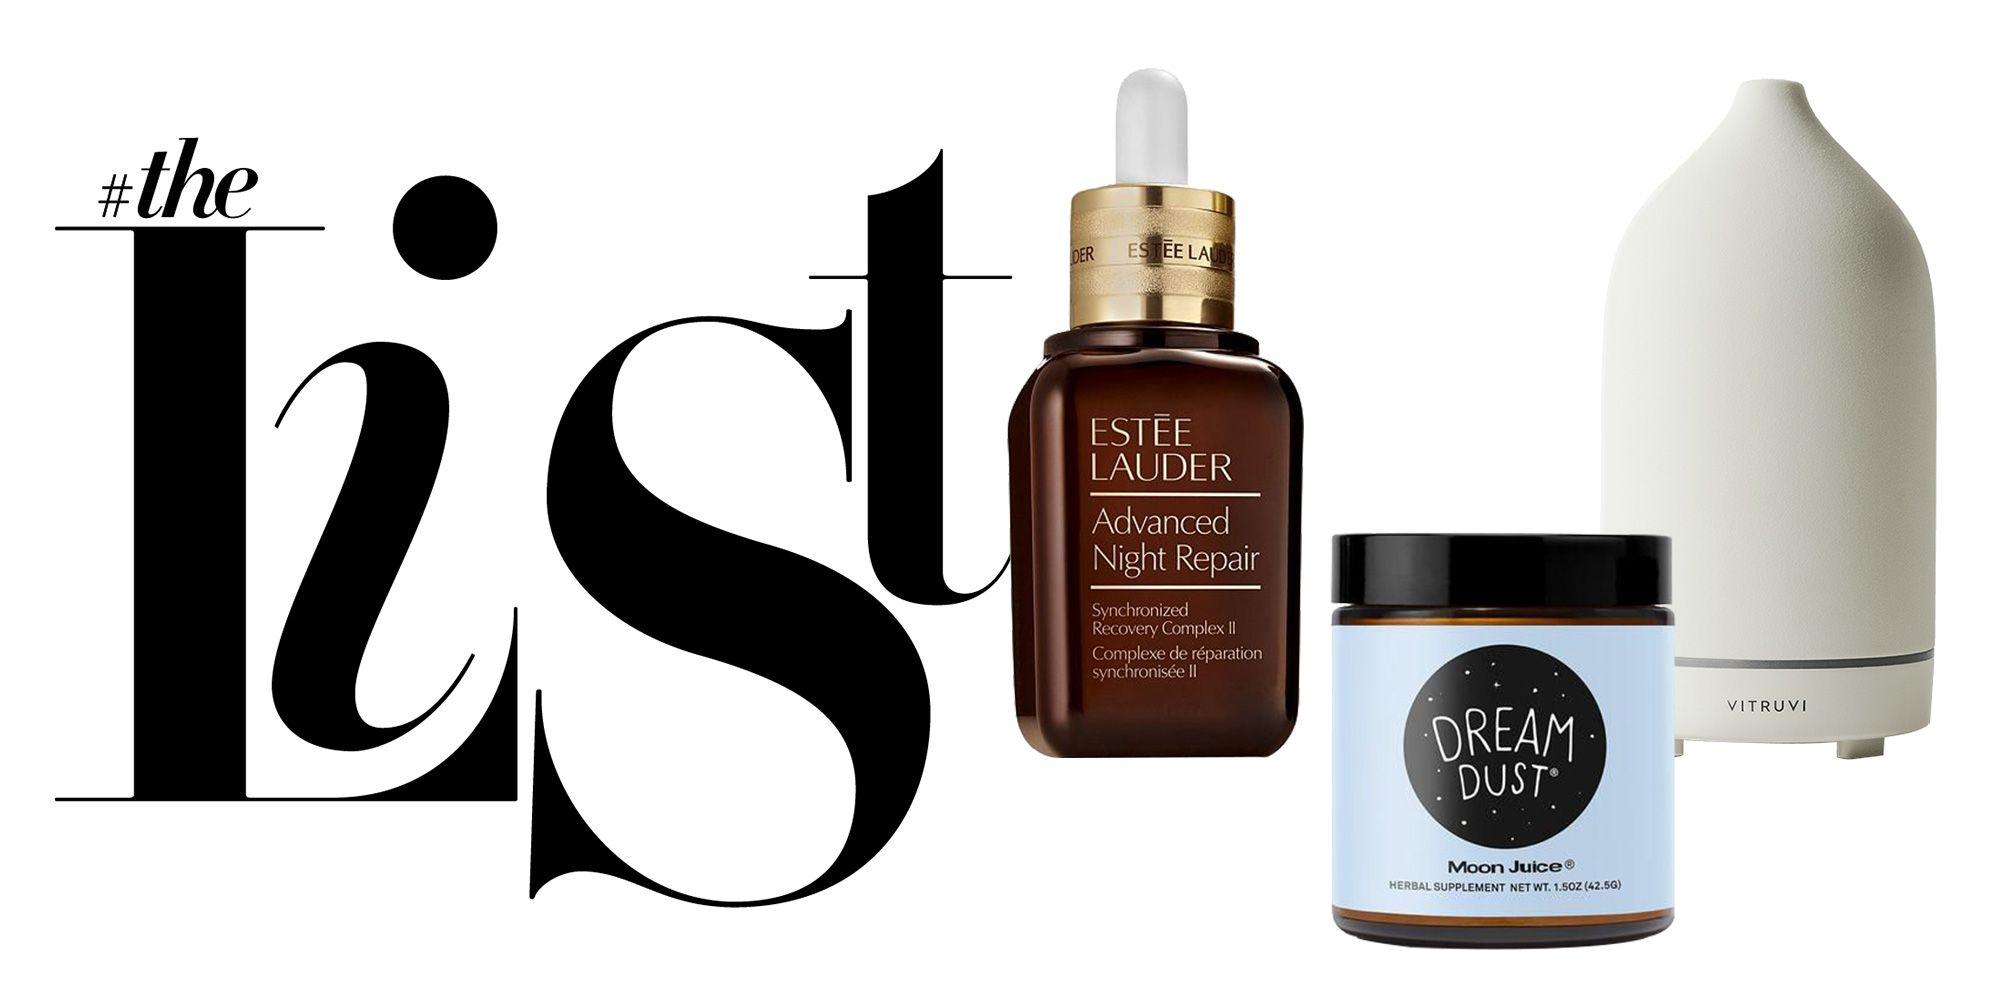 5 Overnight Products That Will Make Your Morning Routine a Breeze